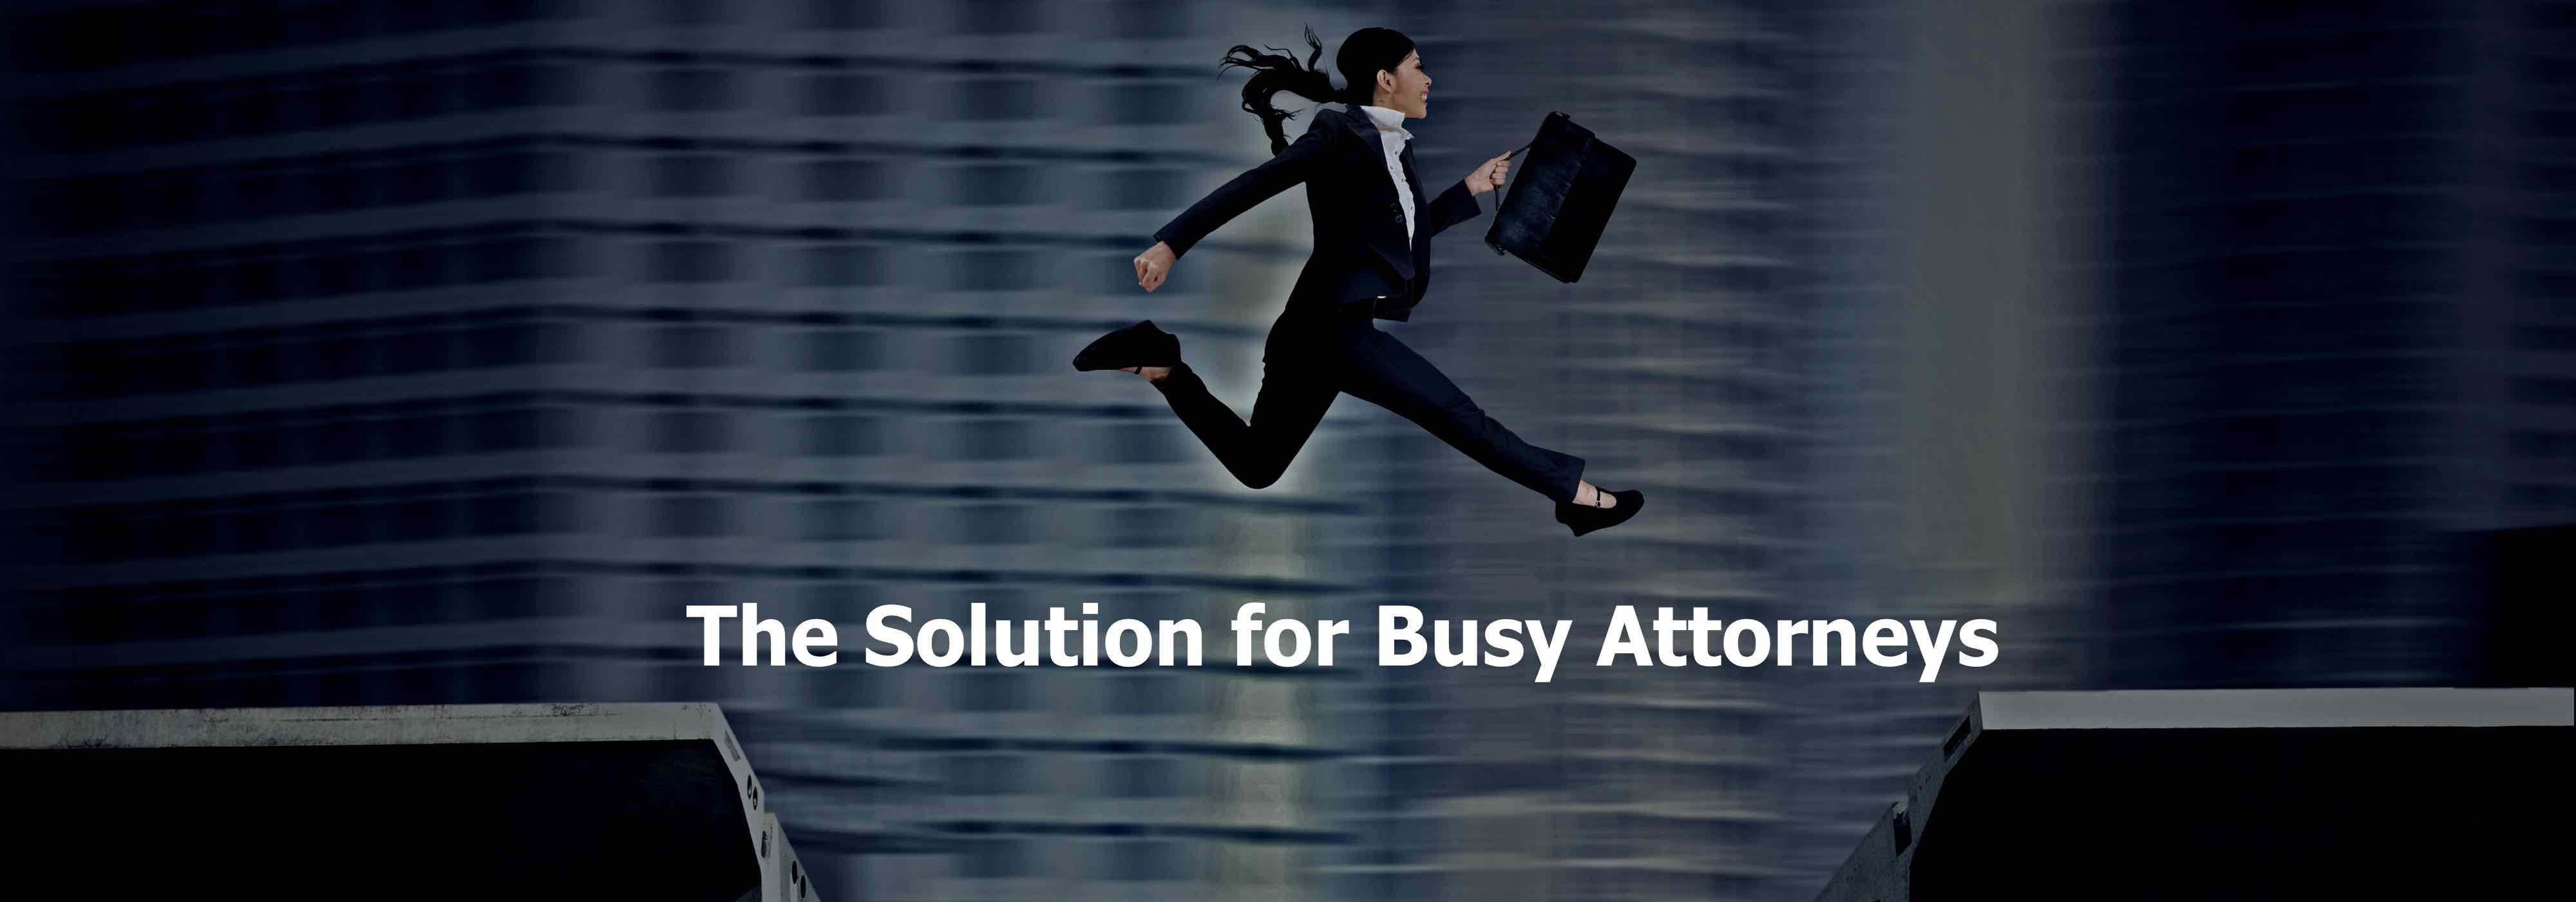 The Solution for Busy Attorneys